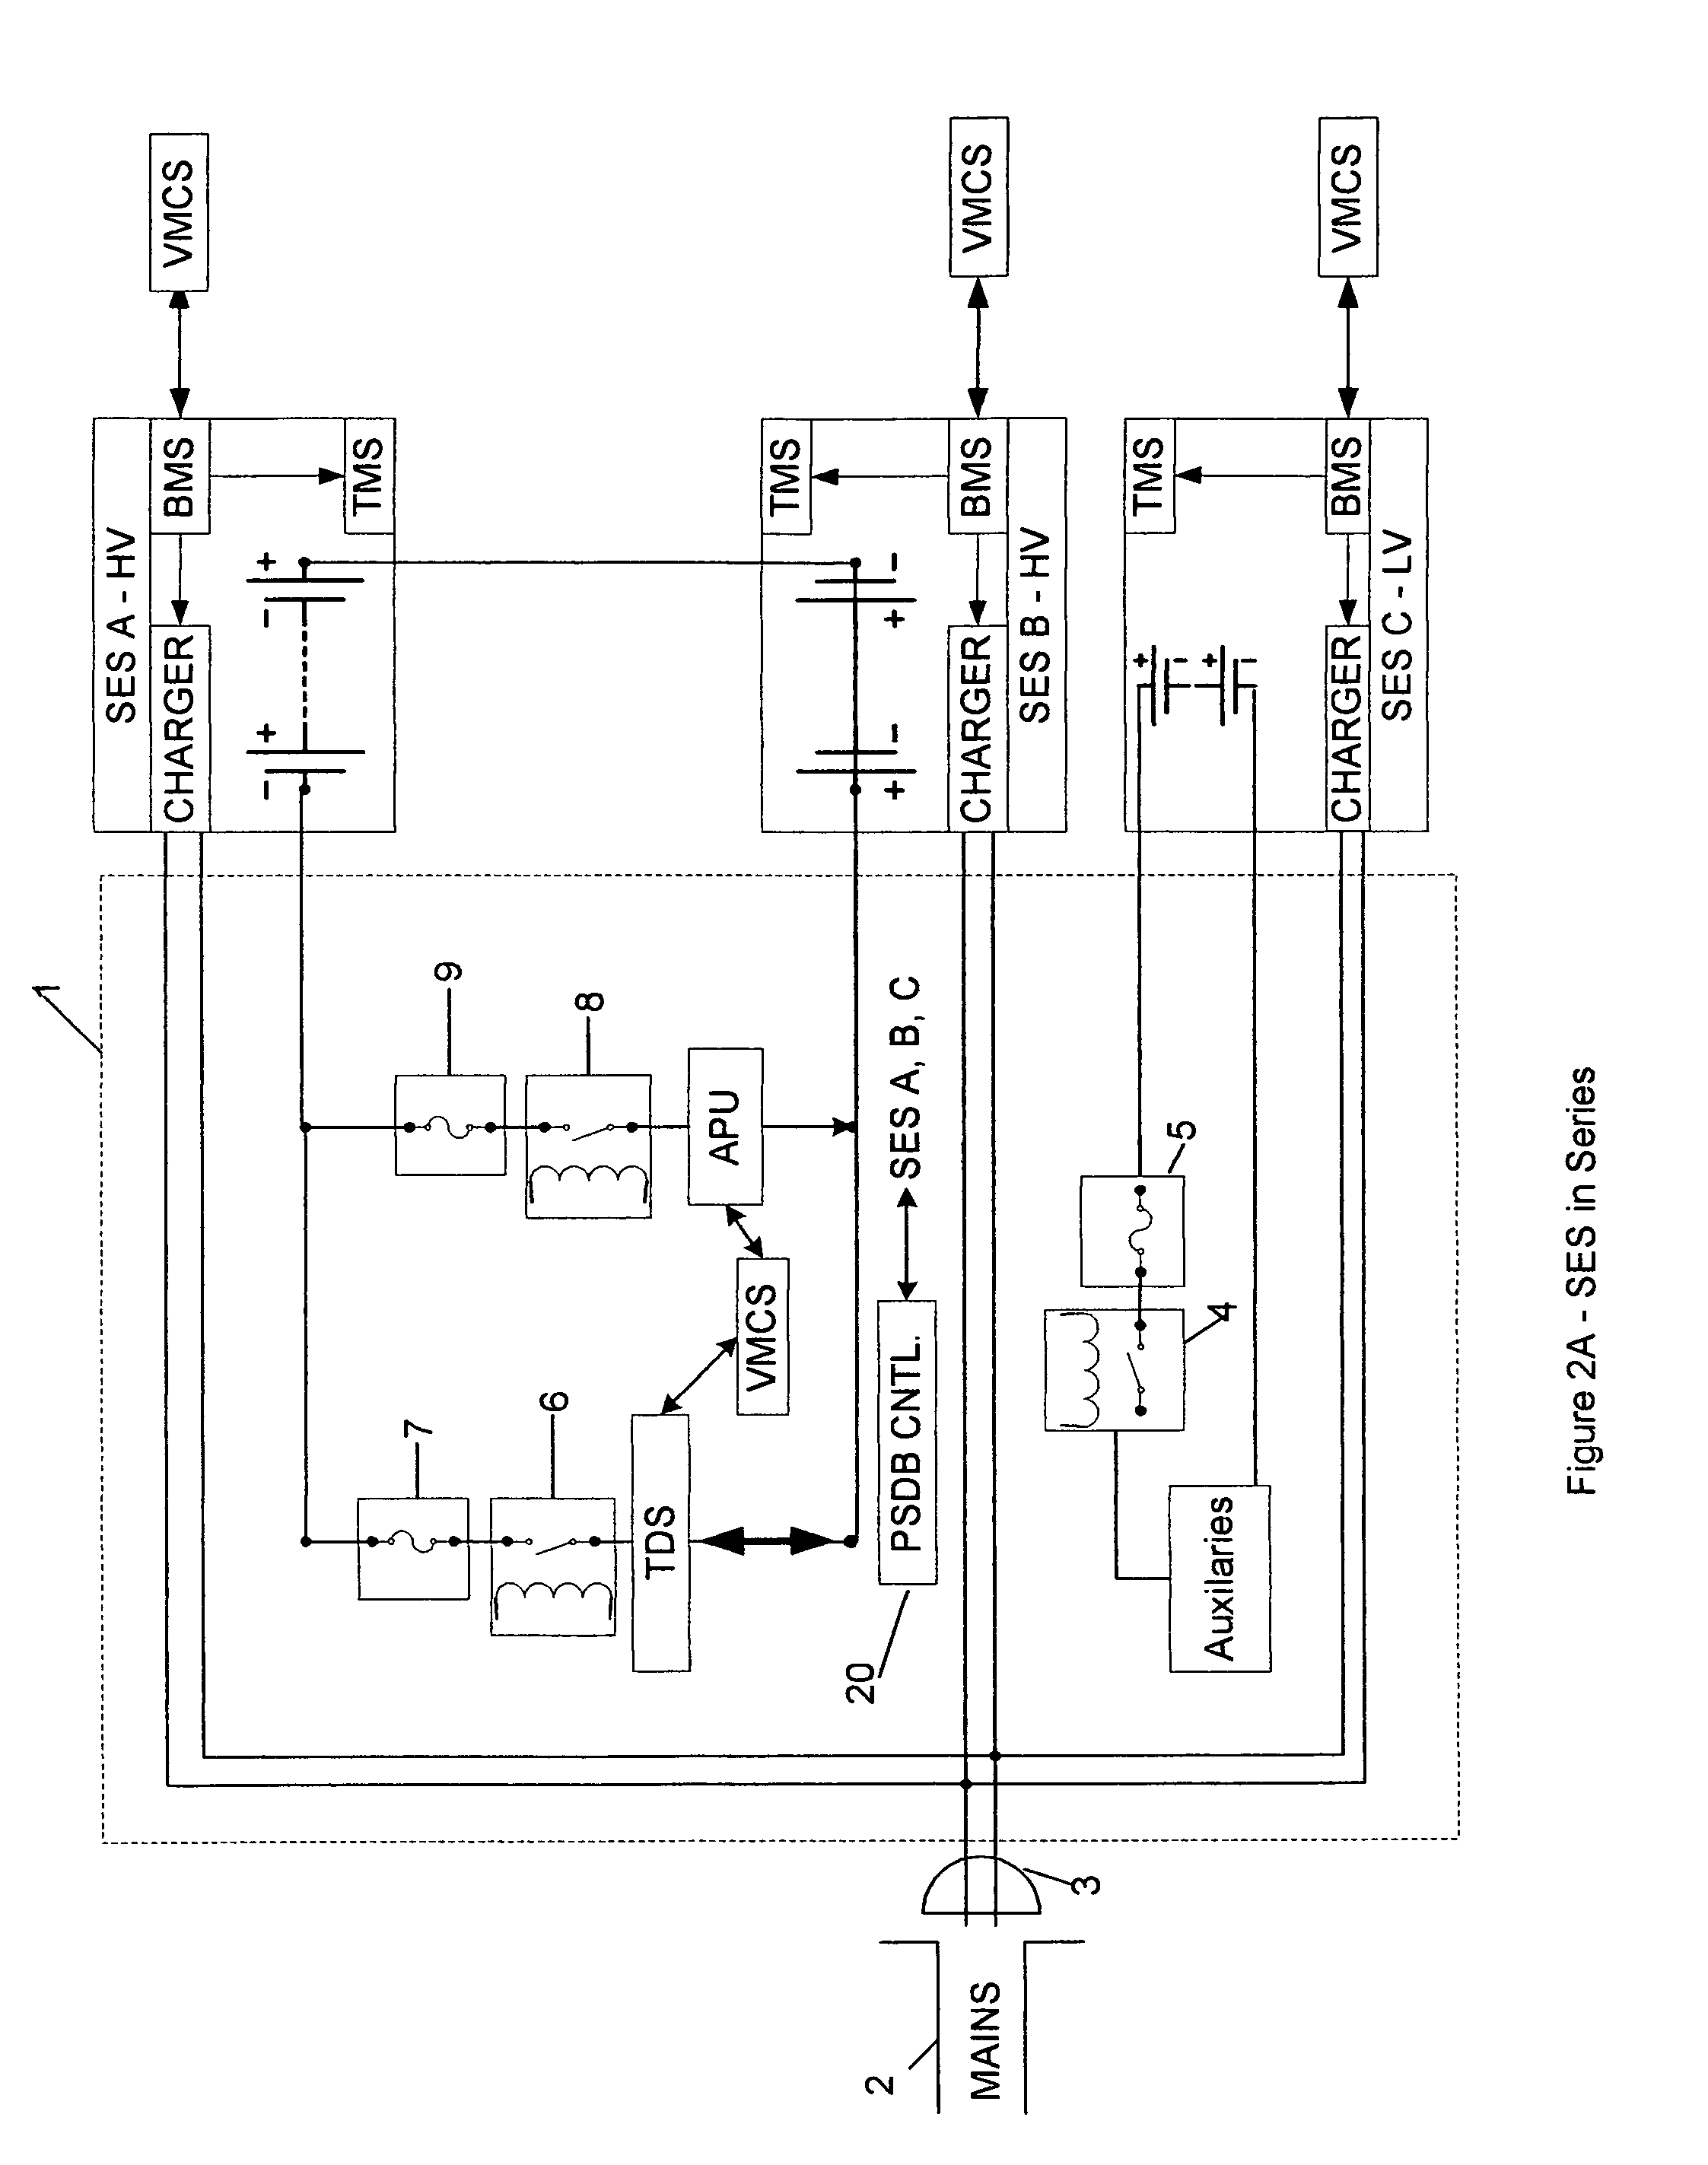 [DIAGRAM_5NL]  2008 Thomas C2 Wiring Diagrams. 2007 international school bus wiring  diagrams wiring diagram. thomas hdx school bus circuit board electrical  problem. 2003 thomas bus wiring schematics wiring library. bluebird bus  wiring diagram | International Bus Wiring Diagrams |  | A.2002-acura-tl-radio.info. All Rights Reserved.